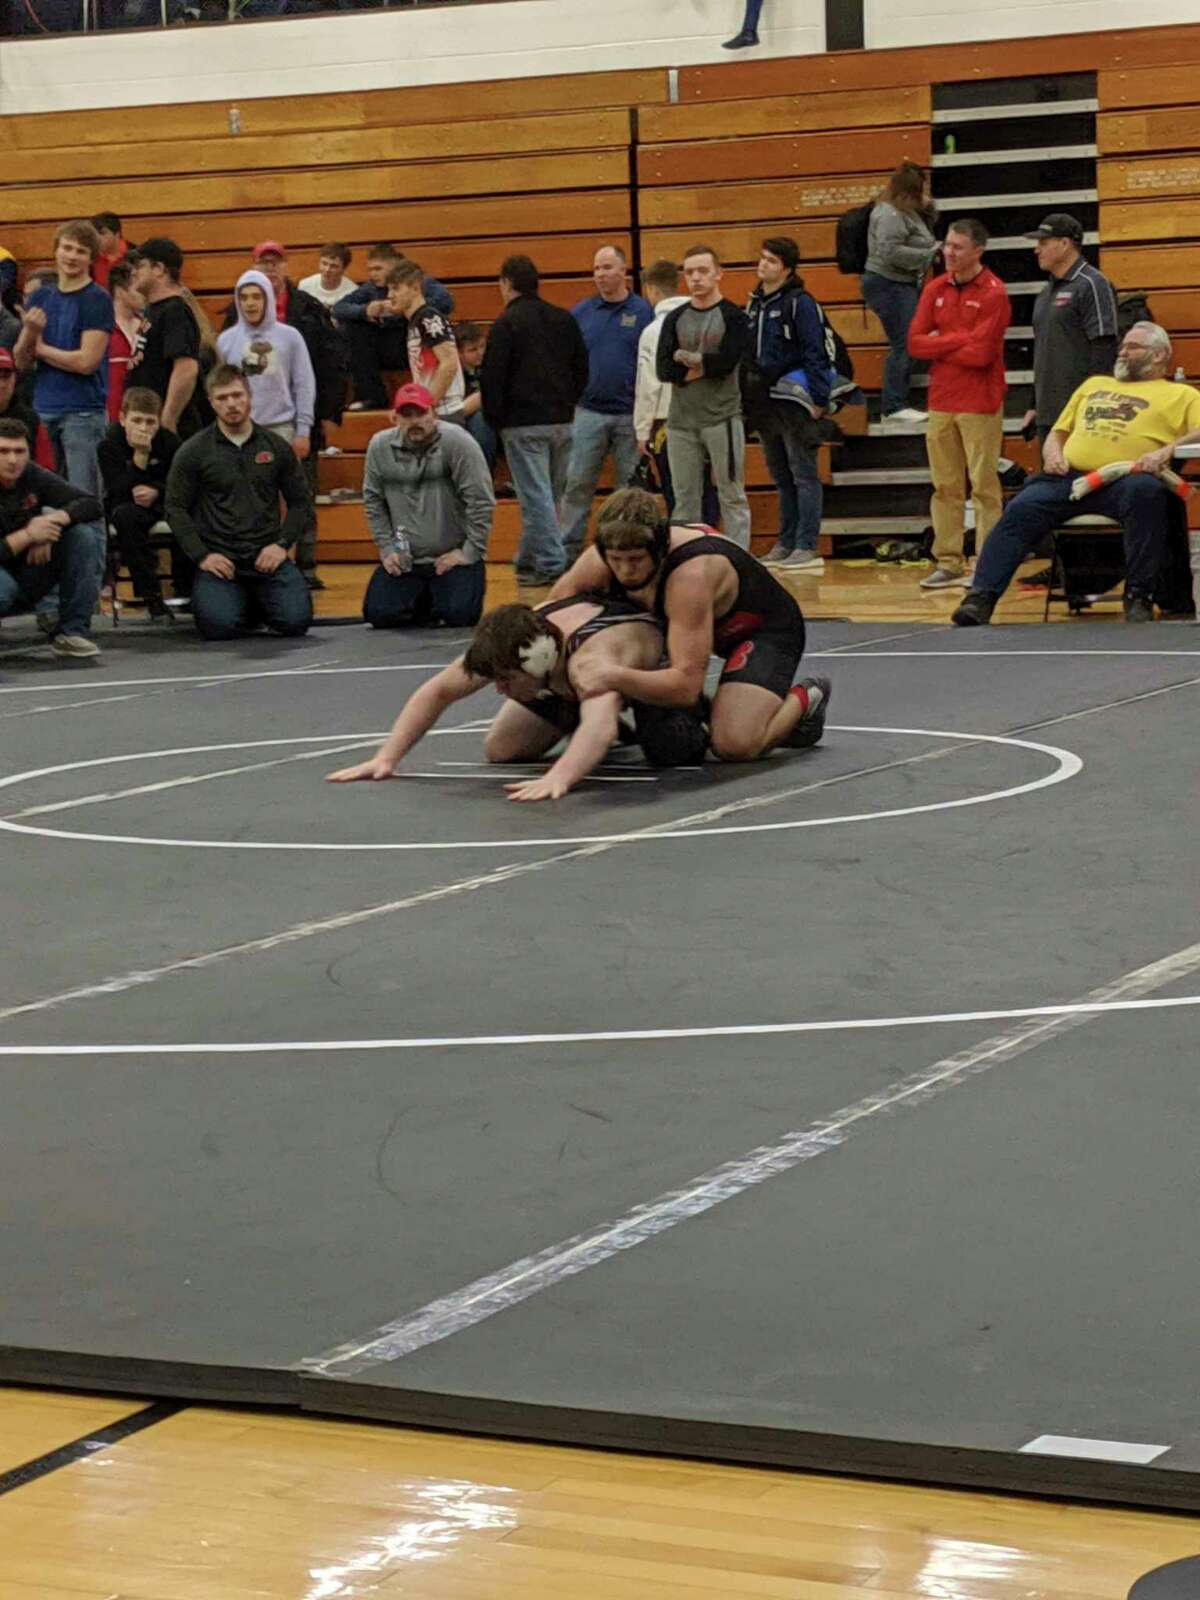 Pictured is Jake Fischer at districts last year. This win allowed the then Beaverton High School Junior to place third at districts and advance to regionals. He was hoping to earn 100 career wresting wins by Jan. 1, but that dream is dwindling as the indoor contact sport ban continues. (Photo Provided)